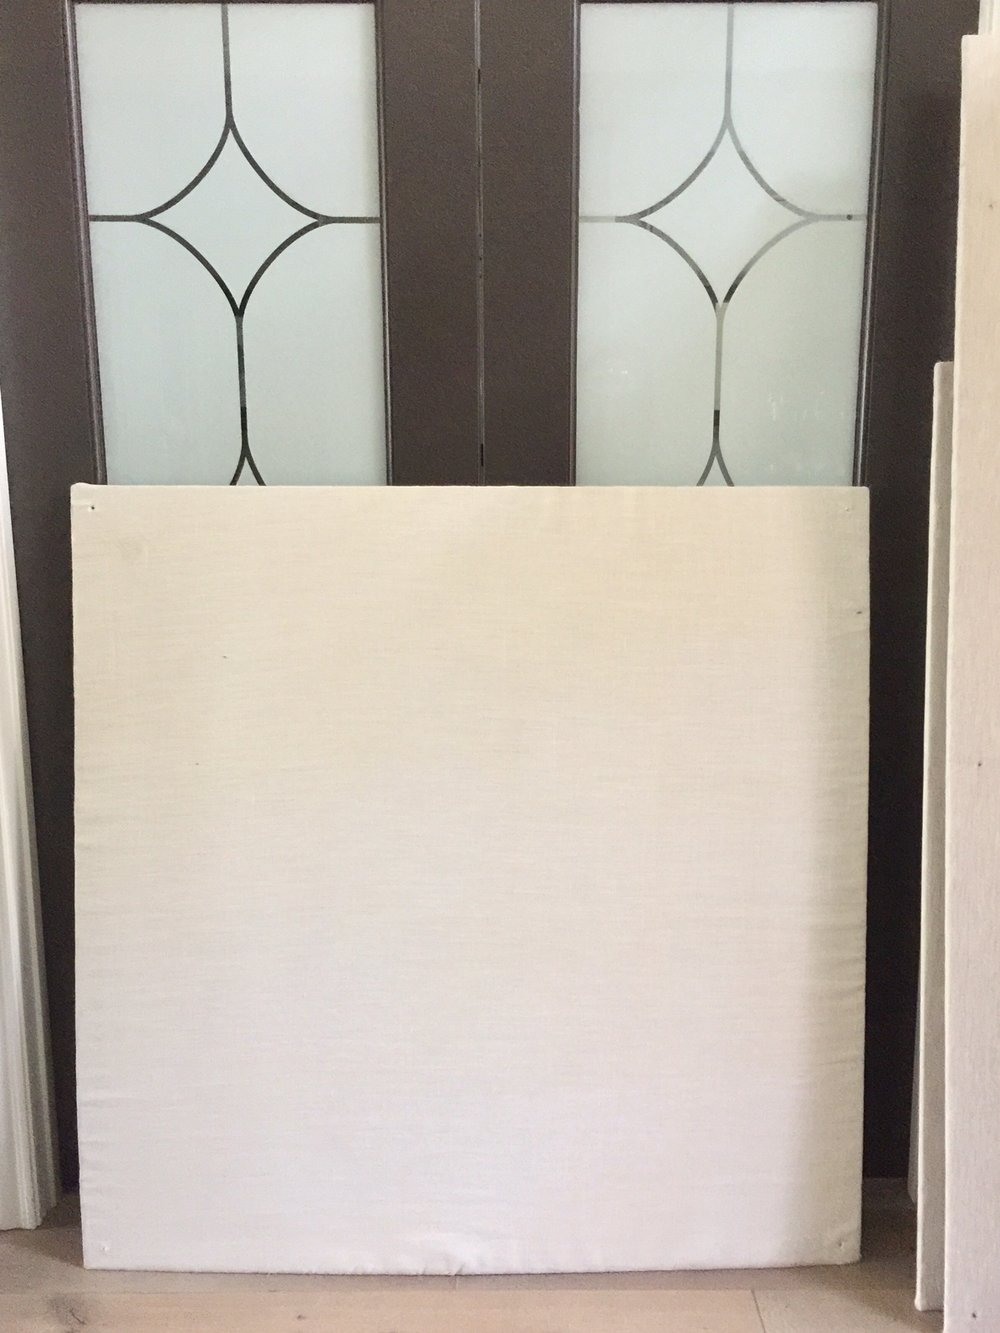 (2) 4' x 4' Off White Linen Homasote Tackboard - $20 each.